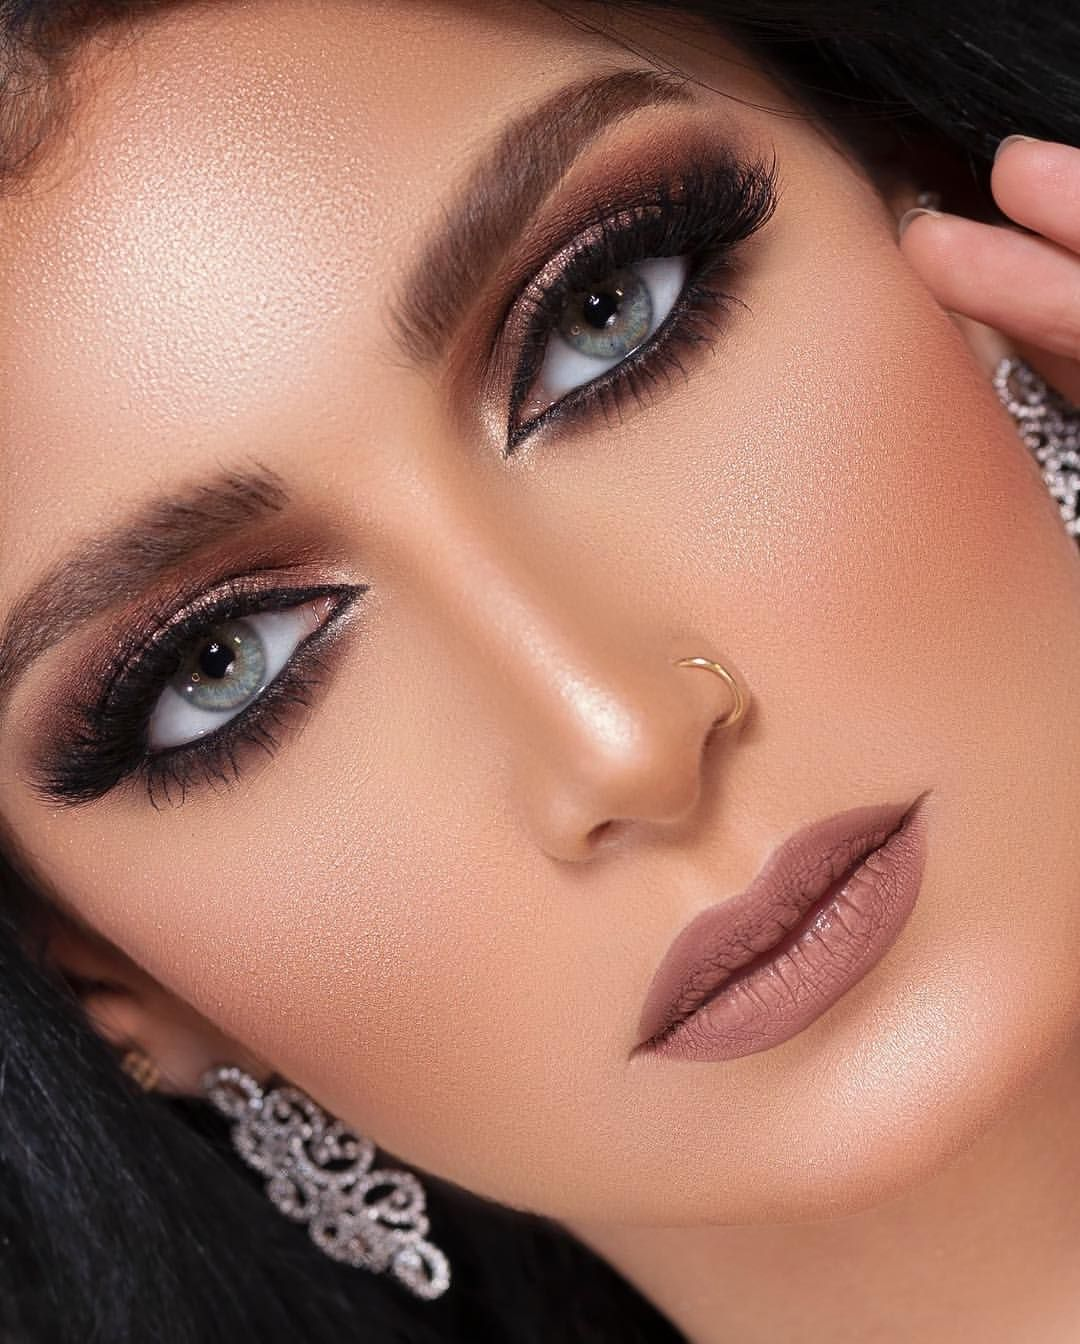 477 Likes 114 Comments G A R A M I Official Garami Signature On Instagram كولكشن رمضان العيد مودي Makeup Eyeshadow Smokey Gorgeous Makeup Lovely Eyes